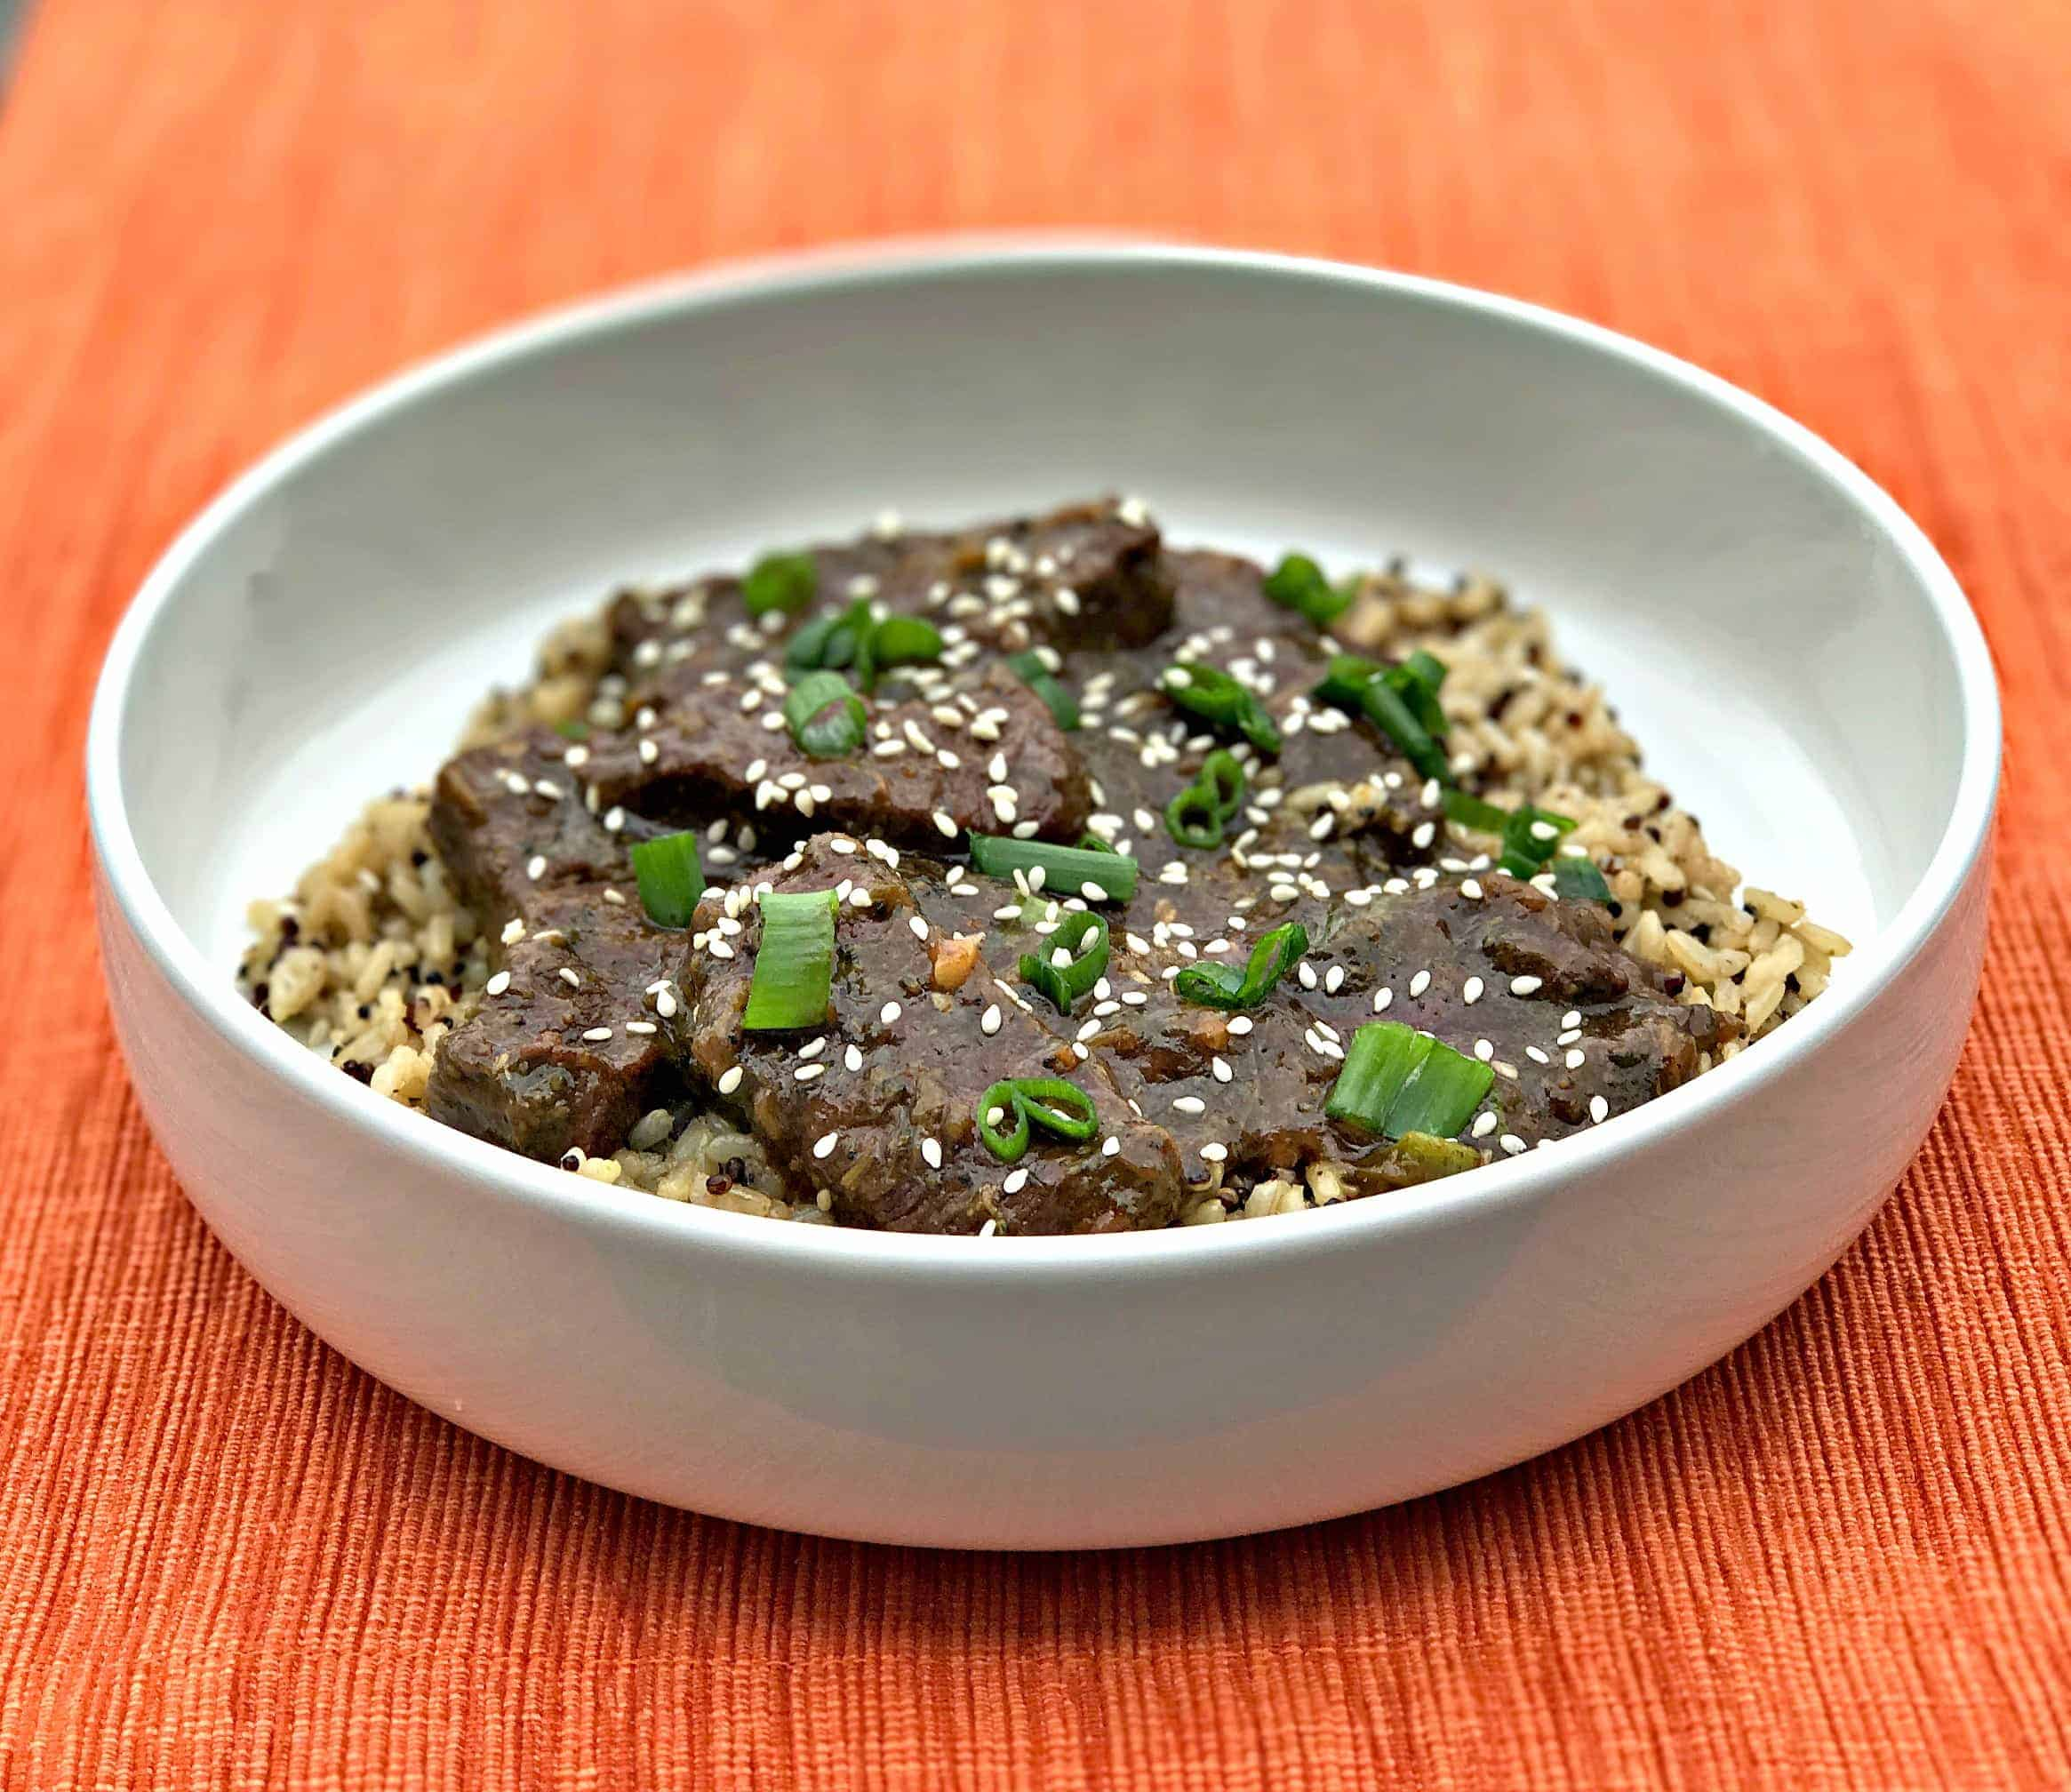 mongolian beef, quinoa and brown rice in a white bowl